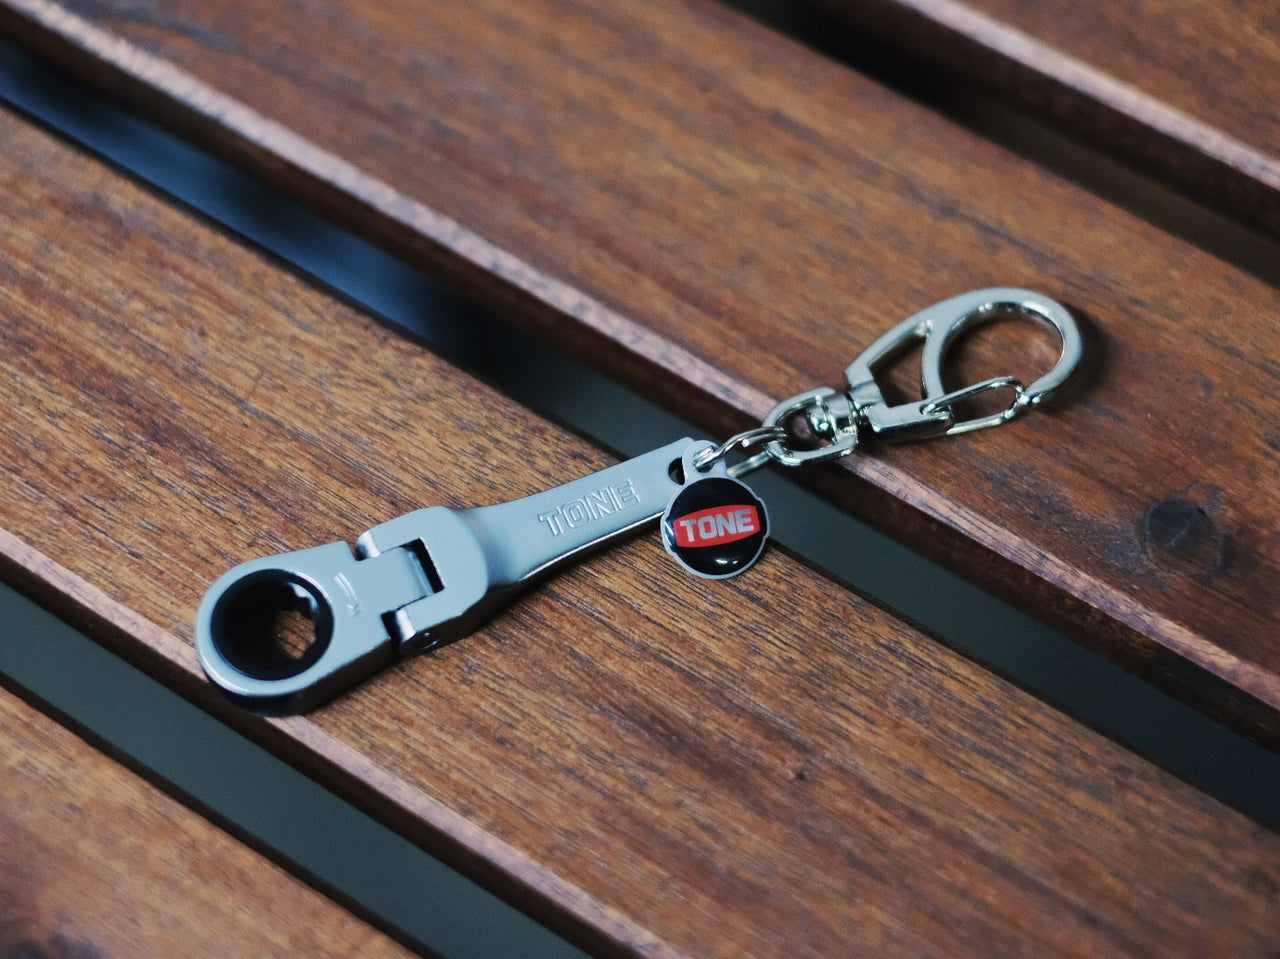 TONE Tools Japan 10mm Ratcheting Keychain